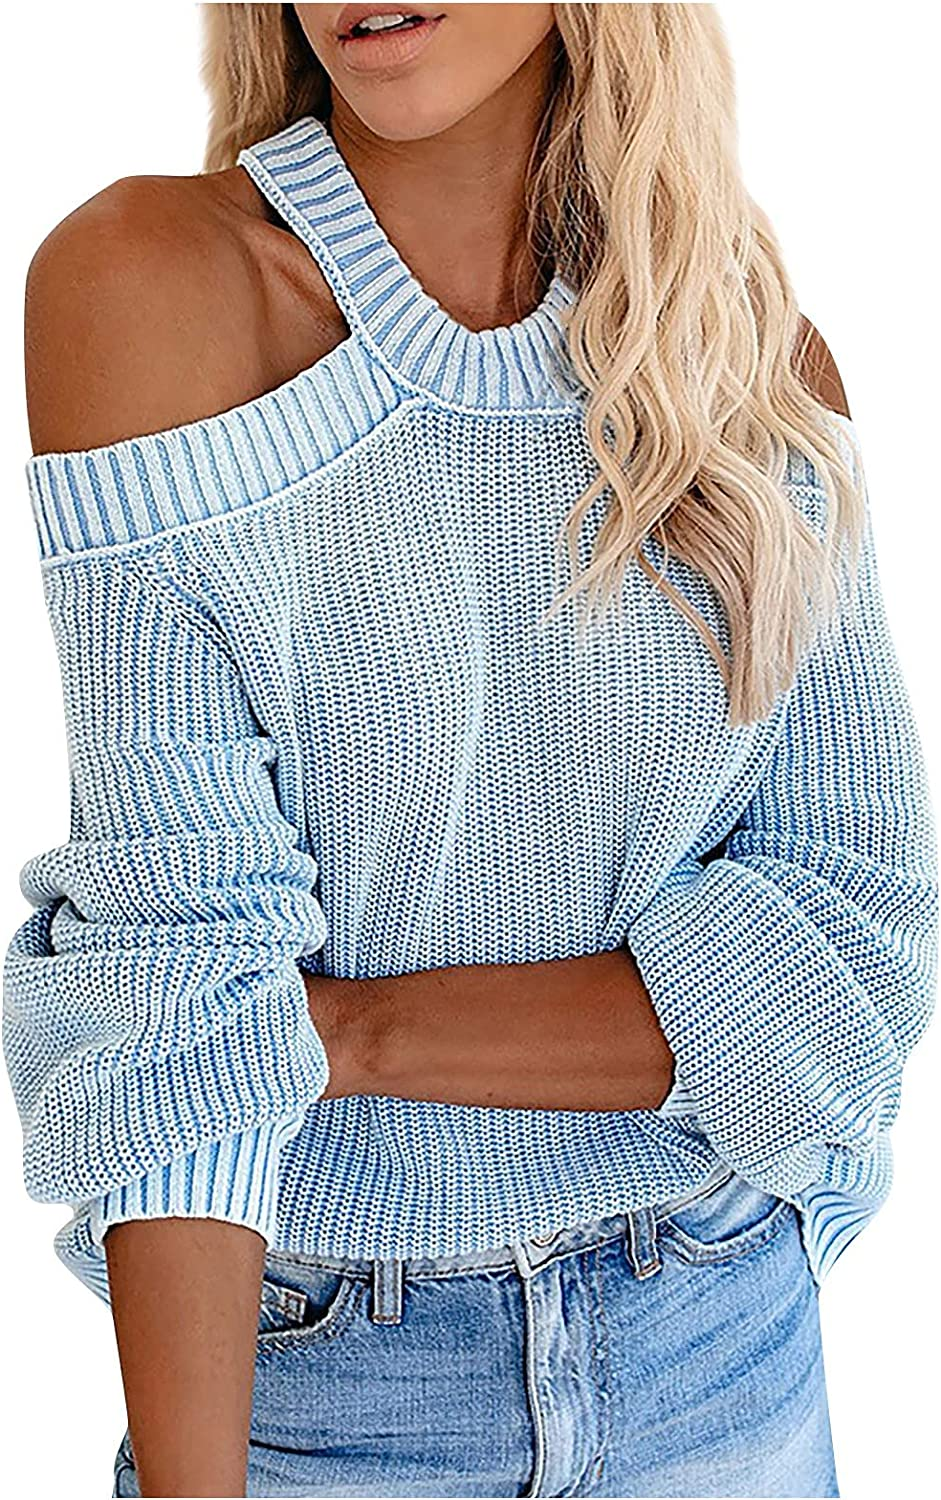 Womens Cold Shoulder Lantern Sleeve Sweaters Cable Knit Cut Out Tops Halter Neck Sexy Pullover Jumper